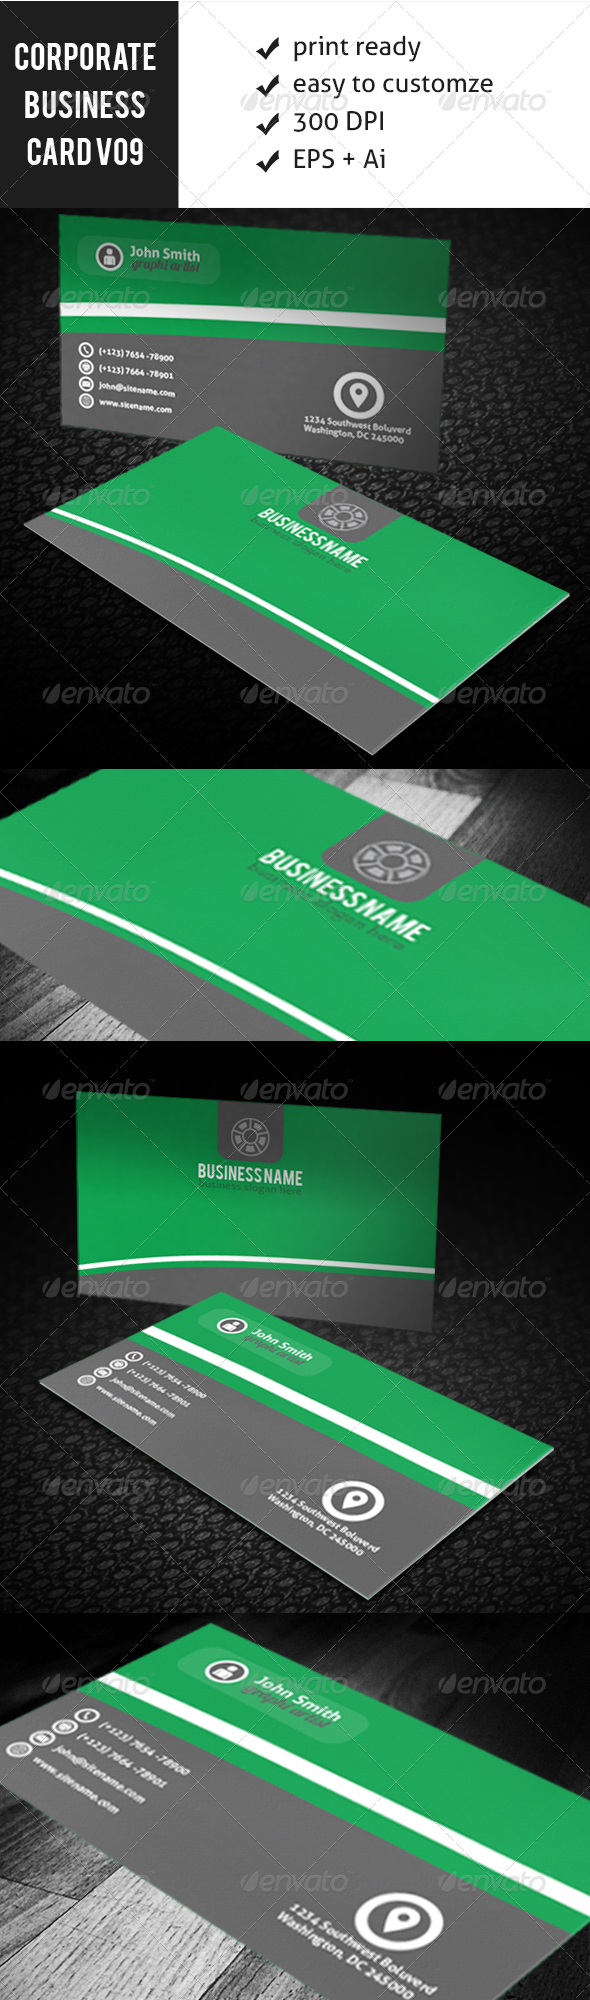 GraphicRiver Corporate Business Card Vo-9 5857658